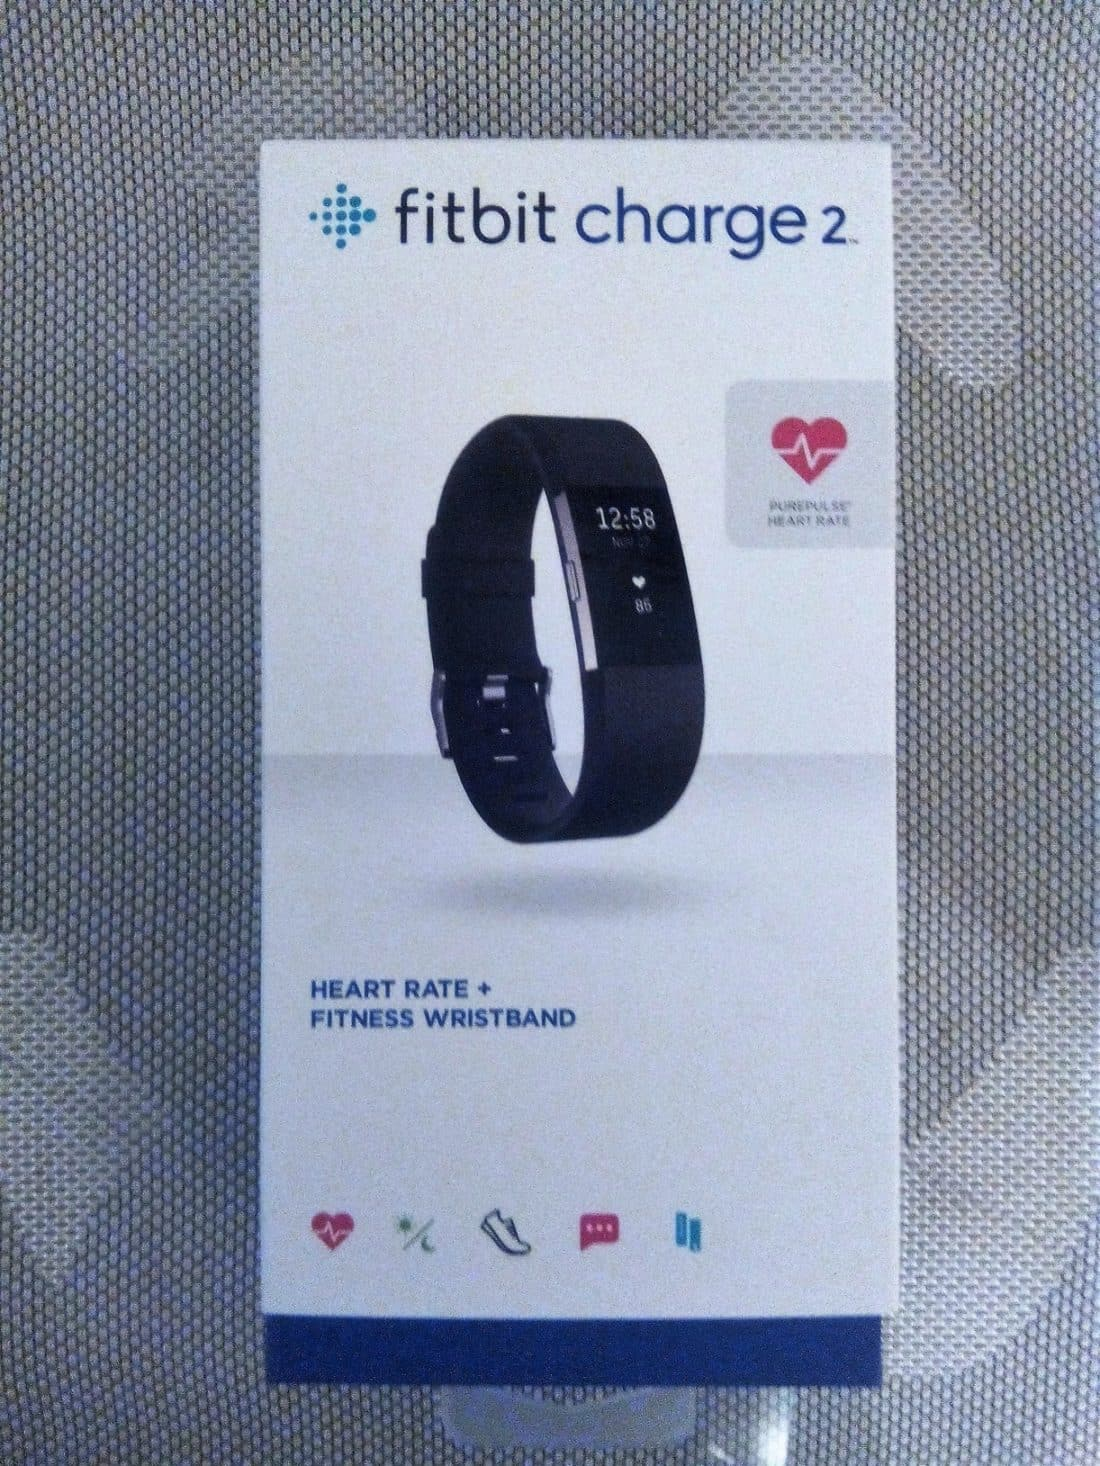 fitbit charge 2bracelet fitbit charge 2prix fitbit charge 2avis fitbit charge 2test fitbit charge 2rose fitbit charge 2lavande fitbit charge 2taille fitbit charge 2amazon